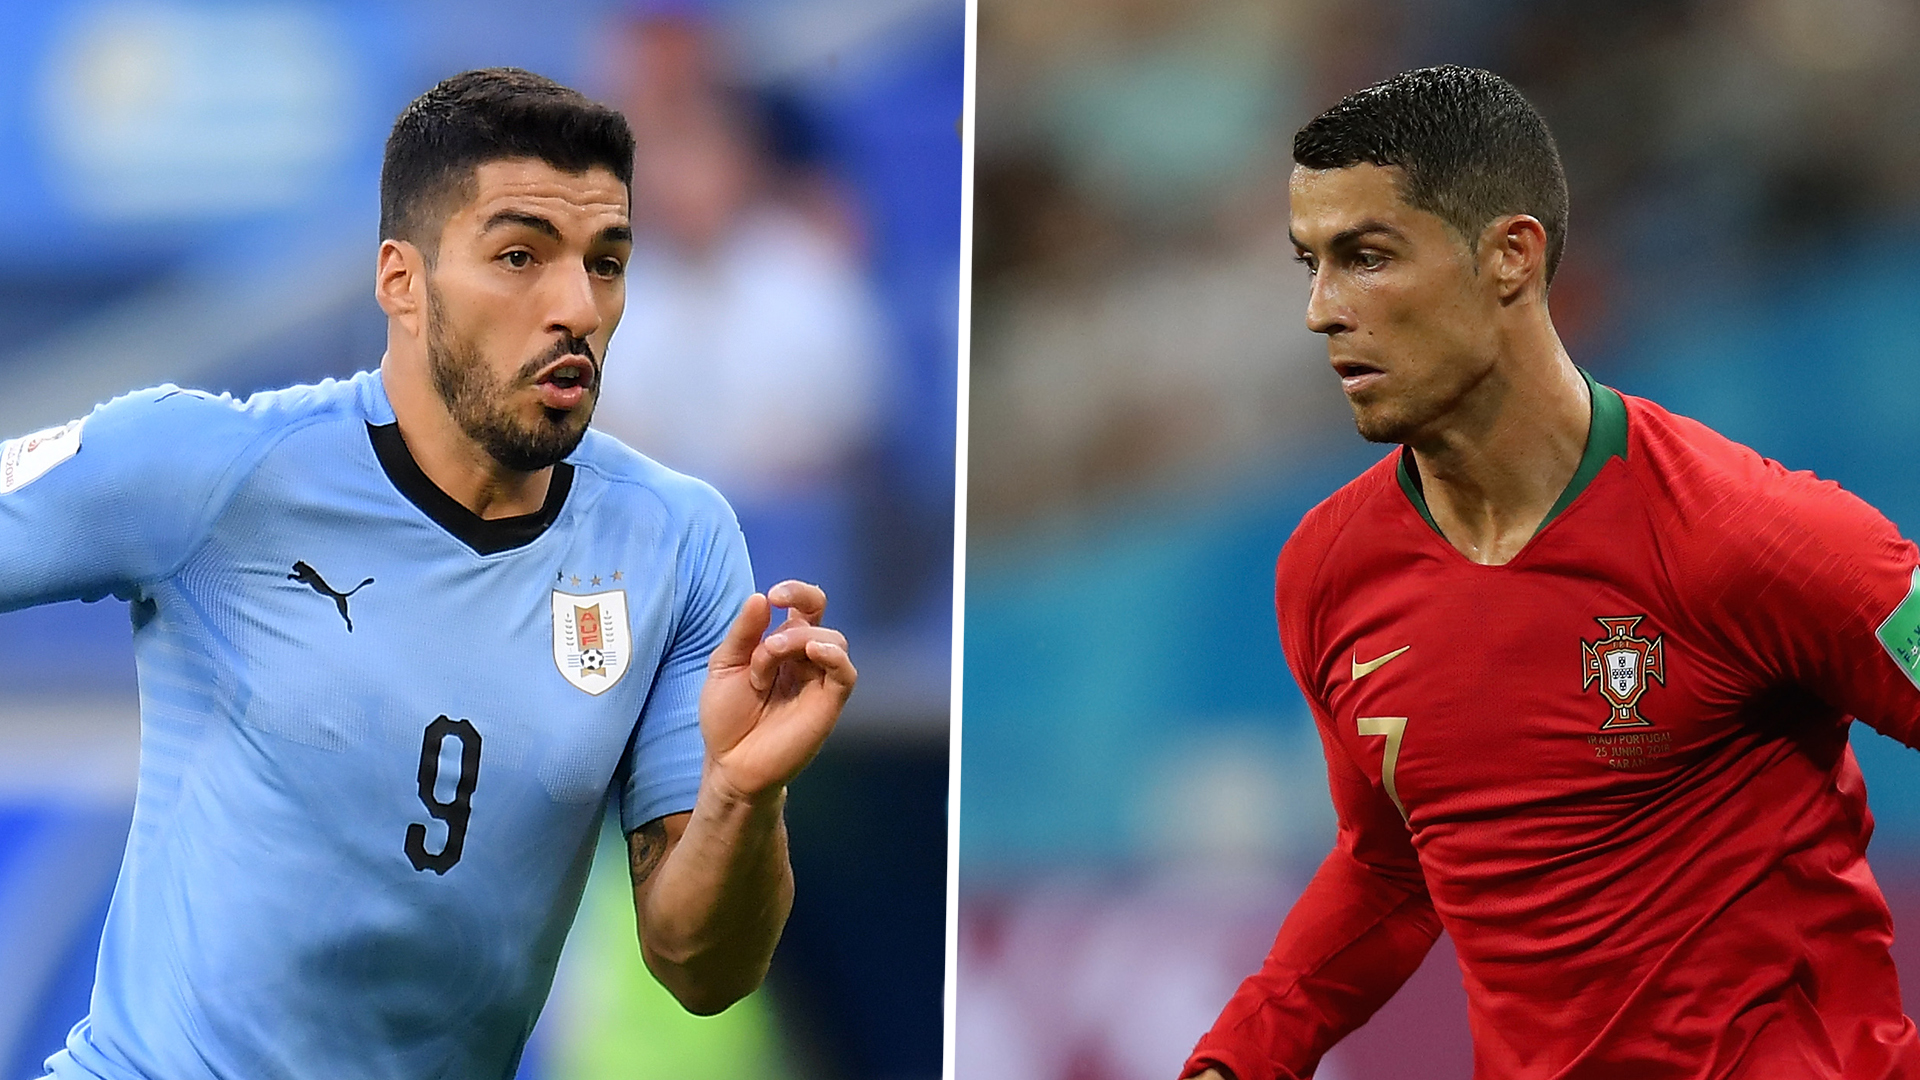 Uruguay 2-1 Portugal: Ronaldo & Portugal sent packing by coruscating Cavani brace